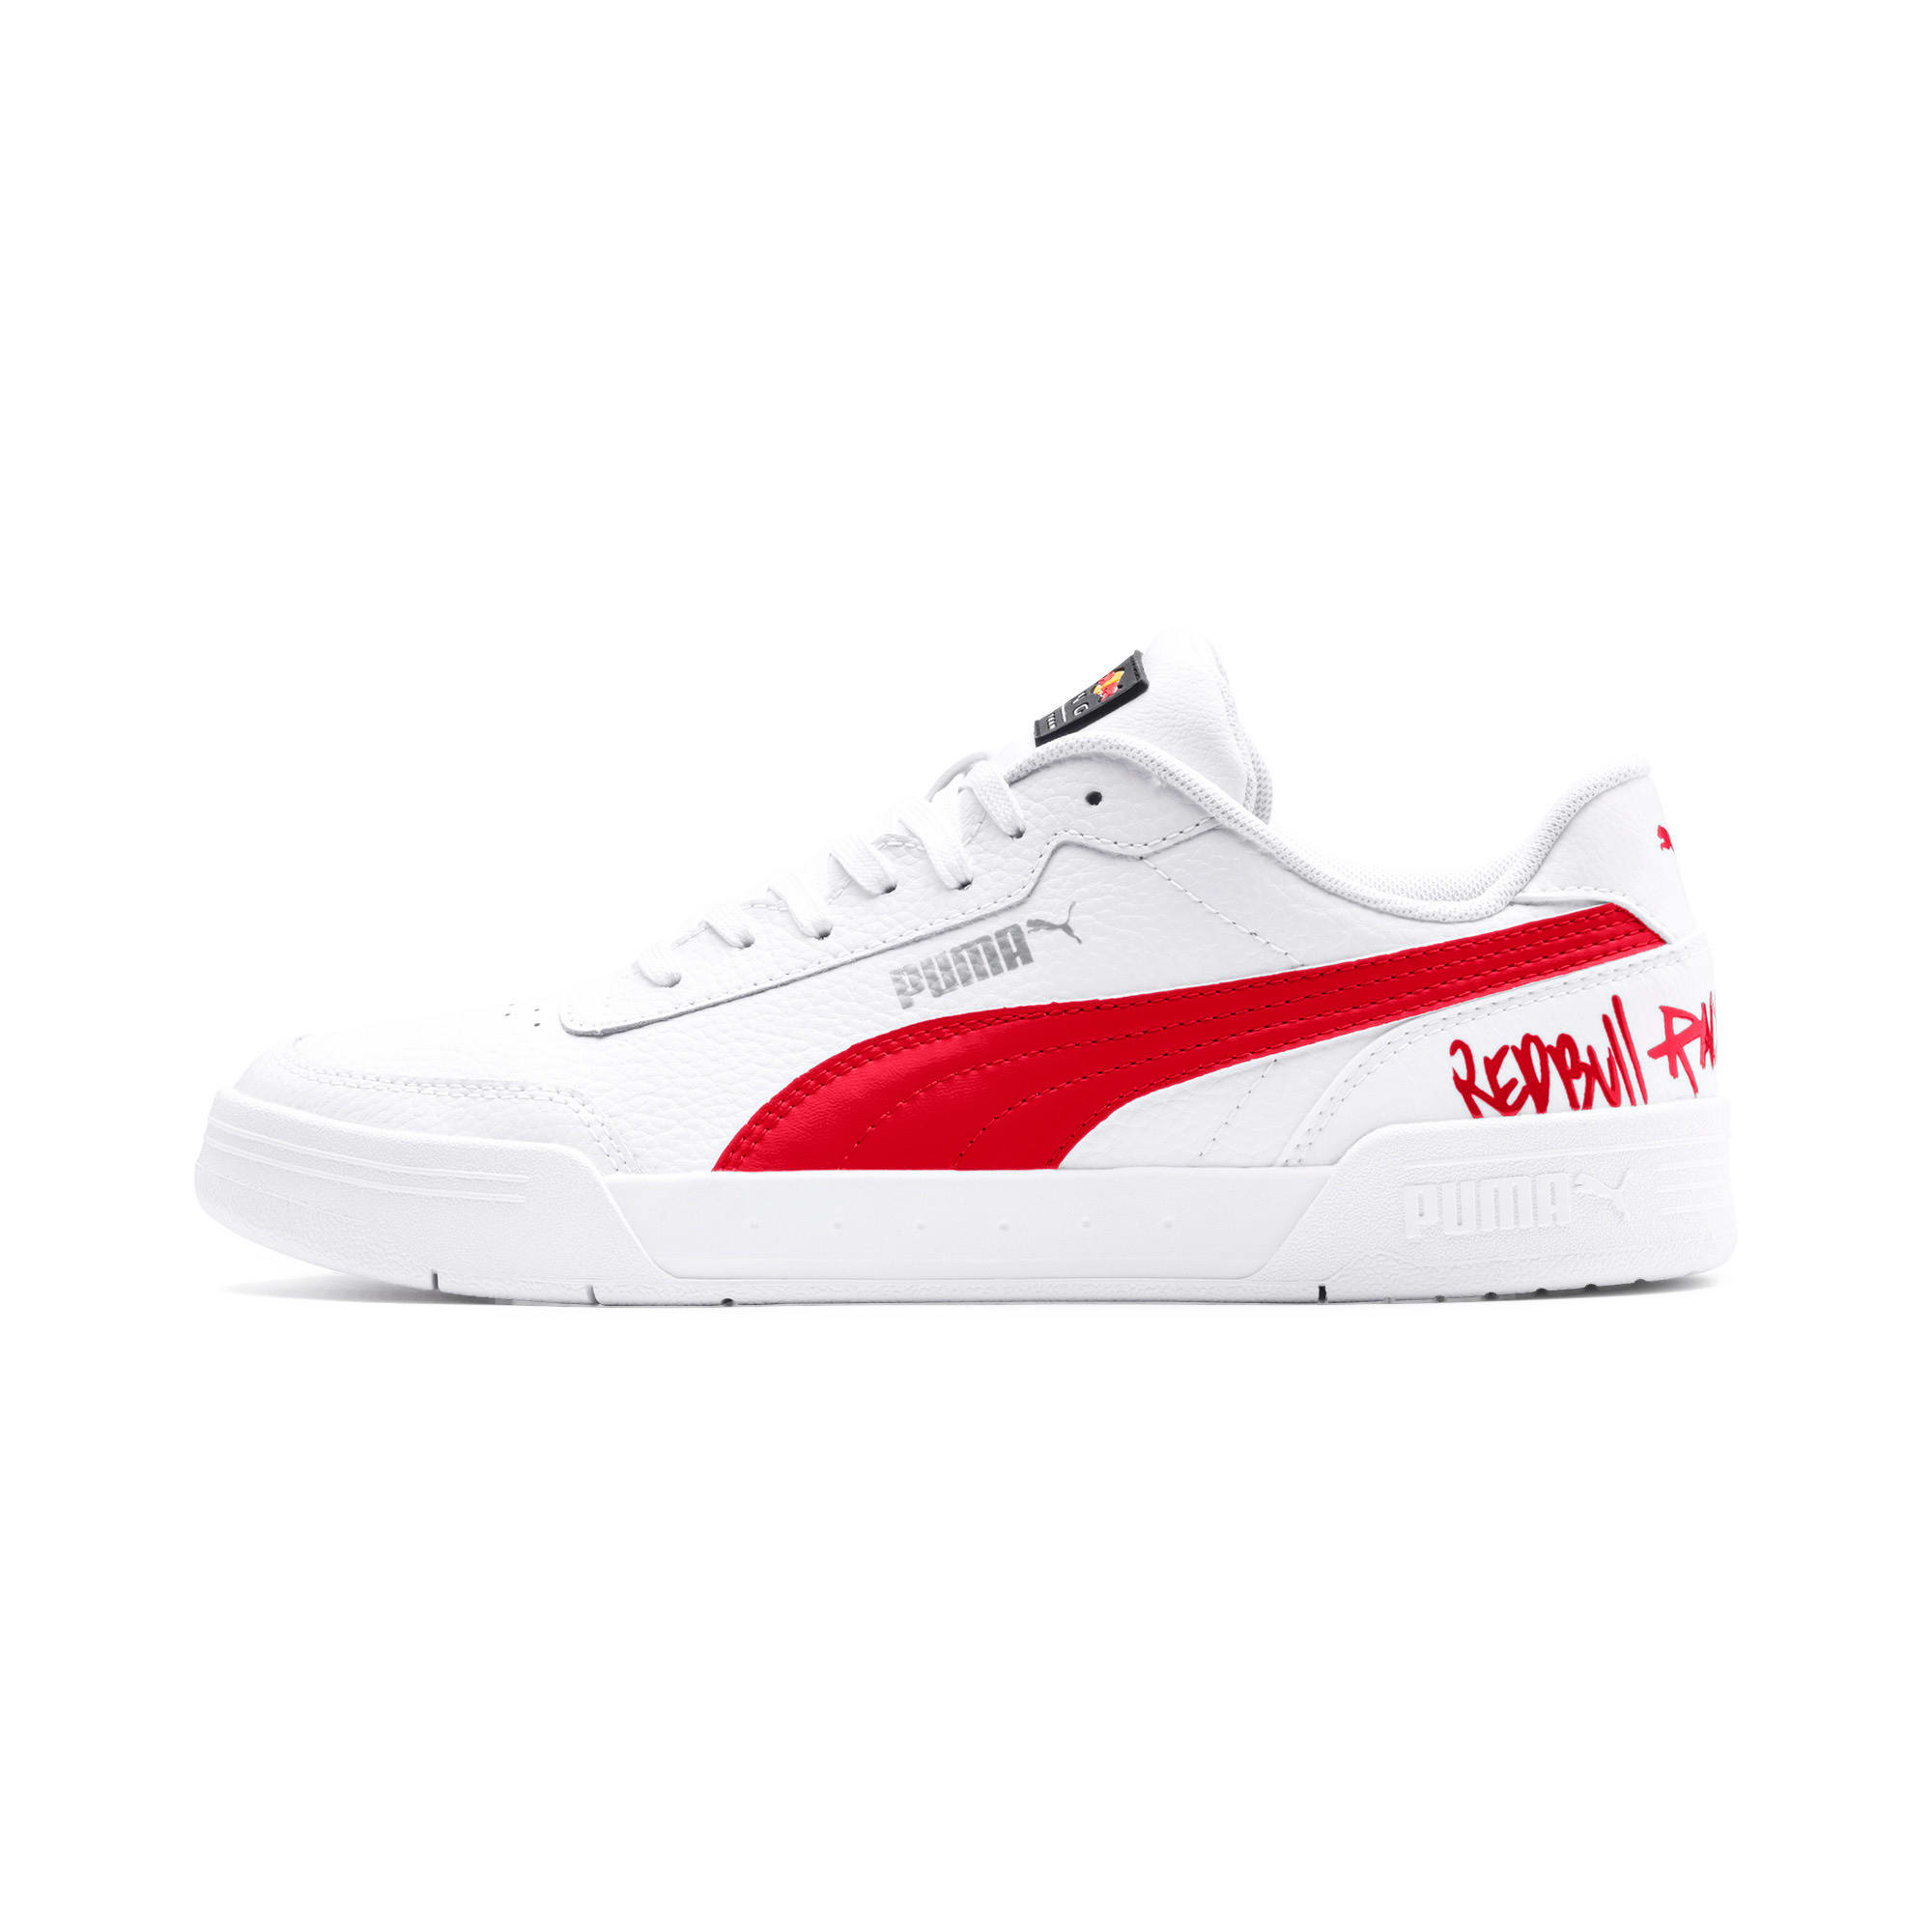 Thumbnail 1 of Red Bull Racing Caracal Trainers, Puma White-Chinese Red-White, medium